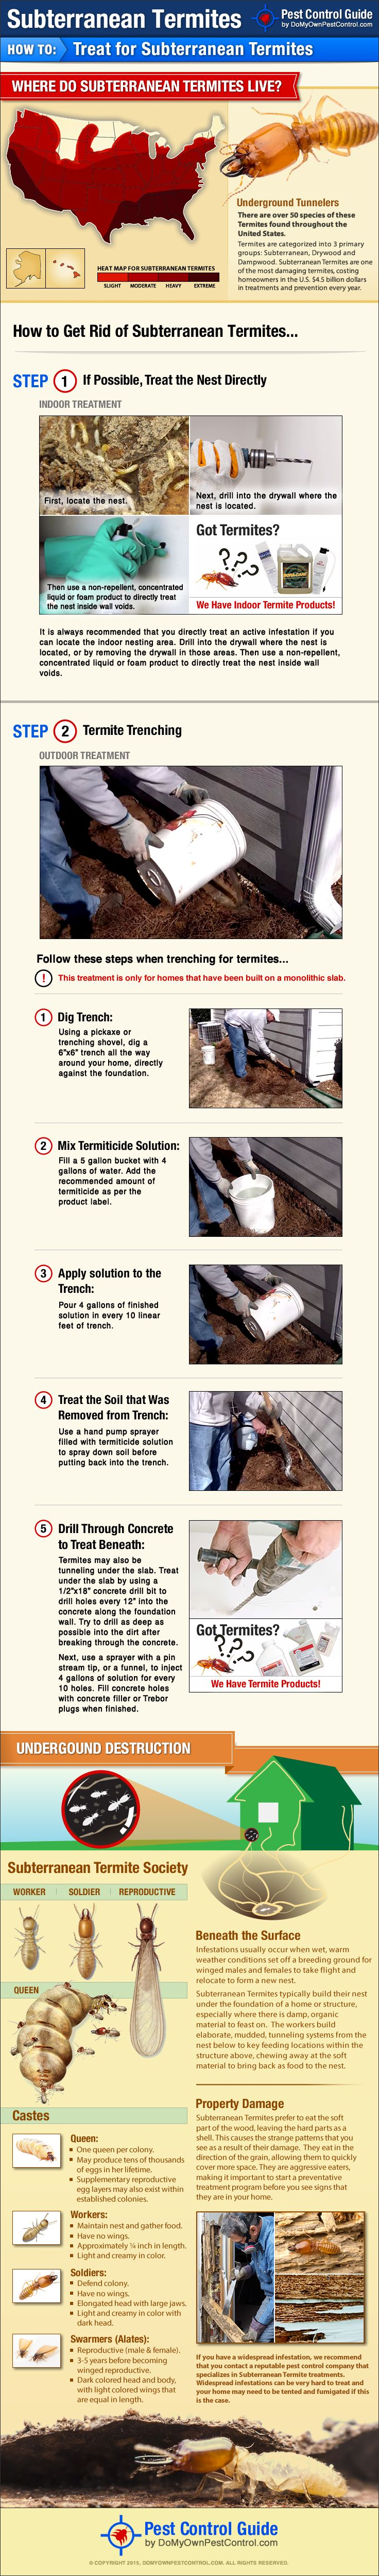 21 best diy pest control guides images on pinterest how to get